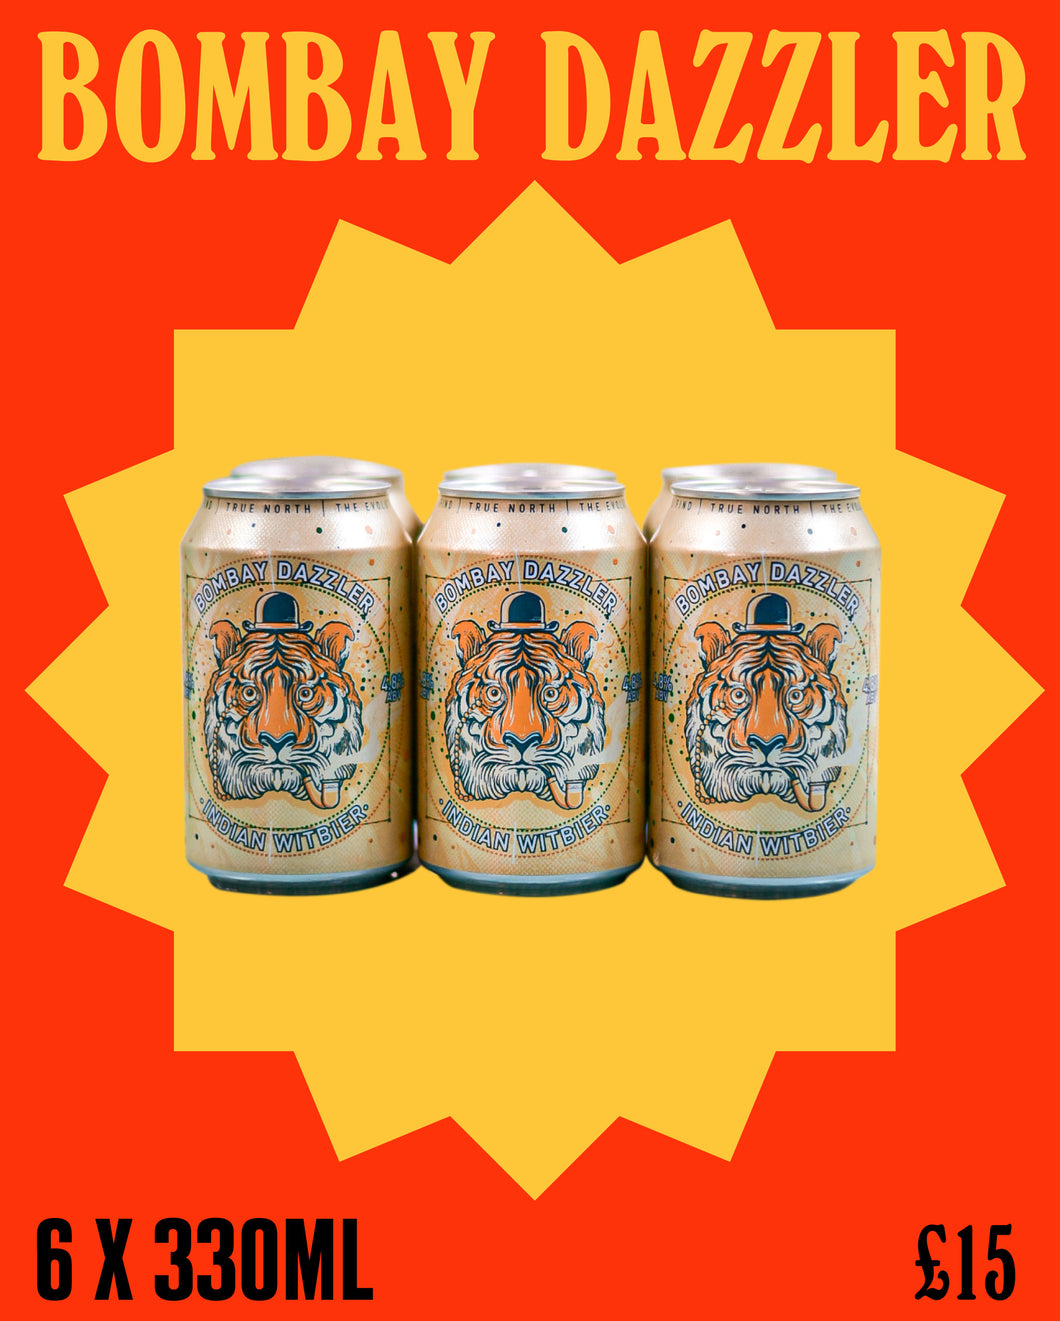 NORTHERN MONK X BUNDOBUST Bombay Dazzler (6 x 330ml)